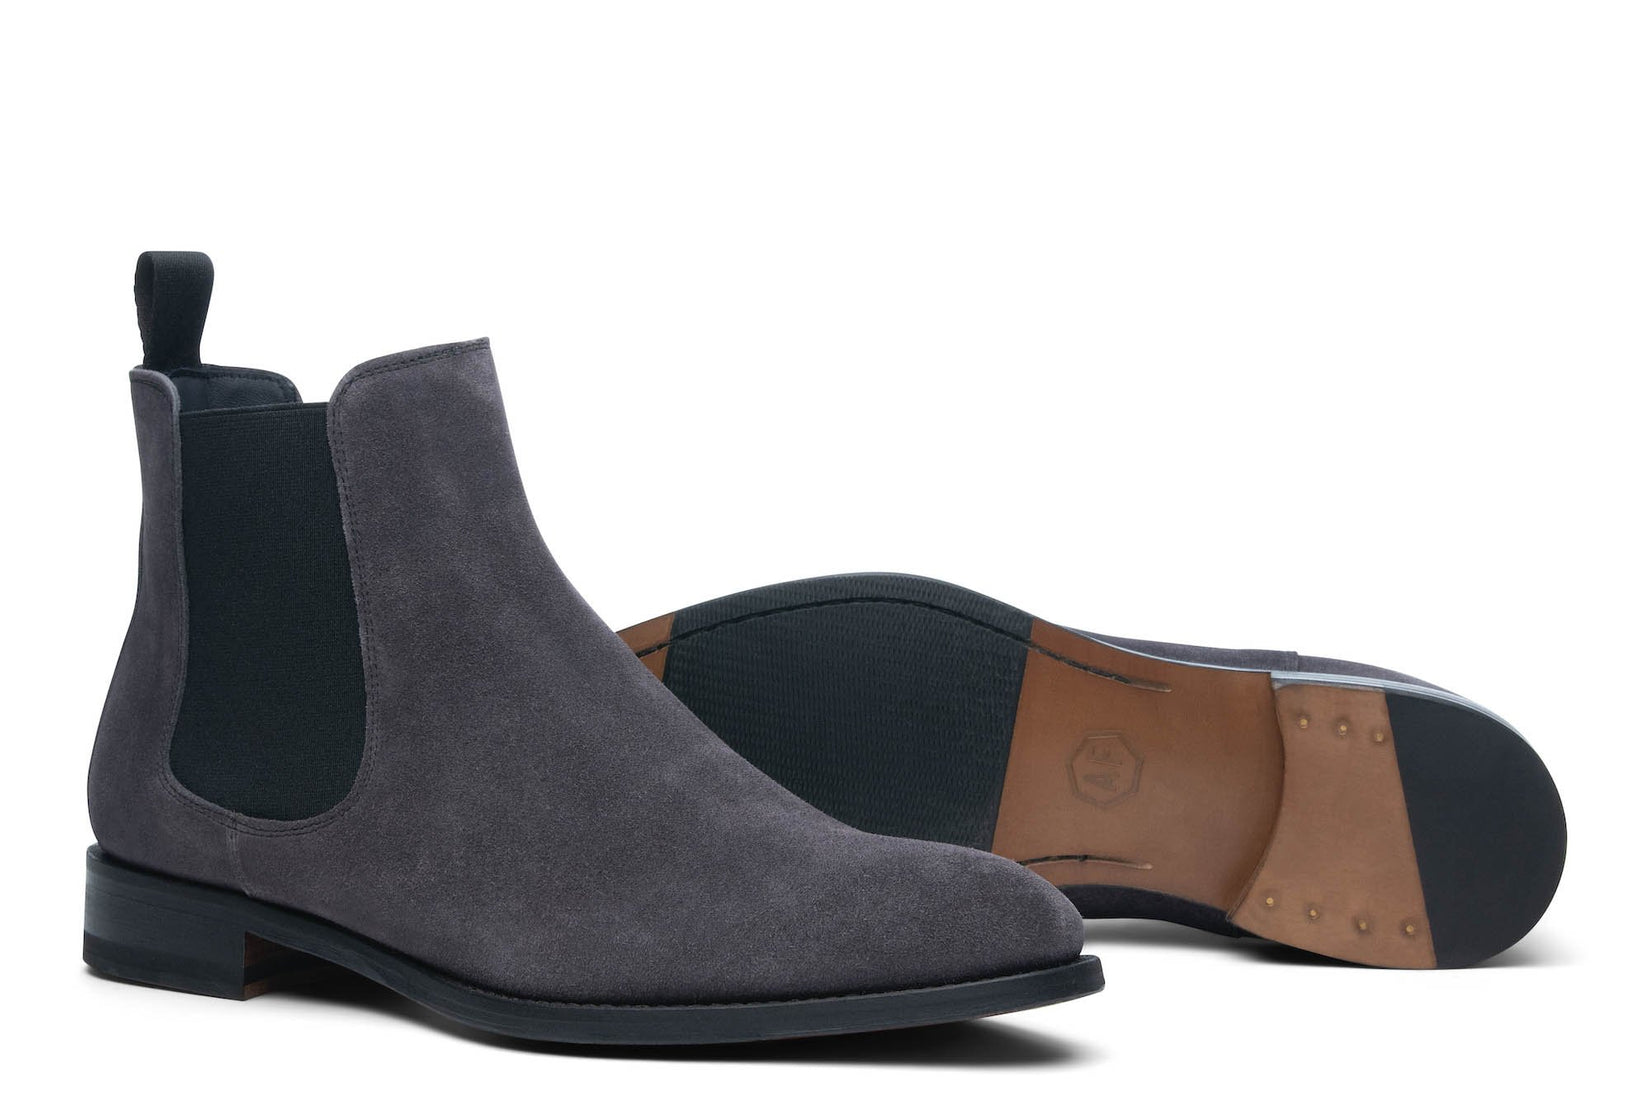 Wednesday Chelsea Boot in Dark Grey